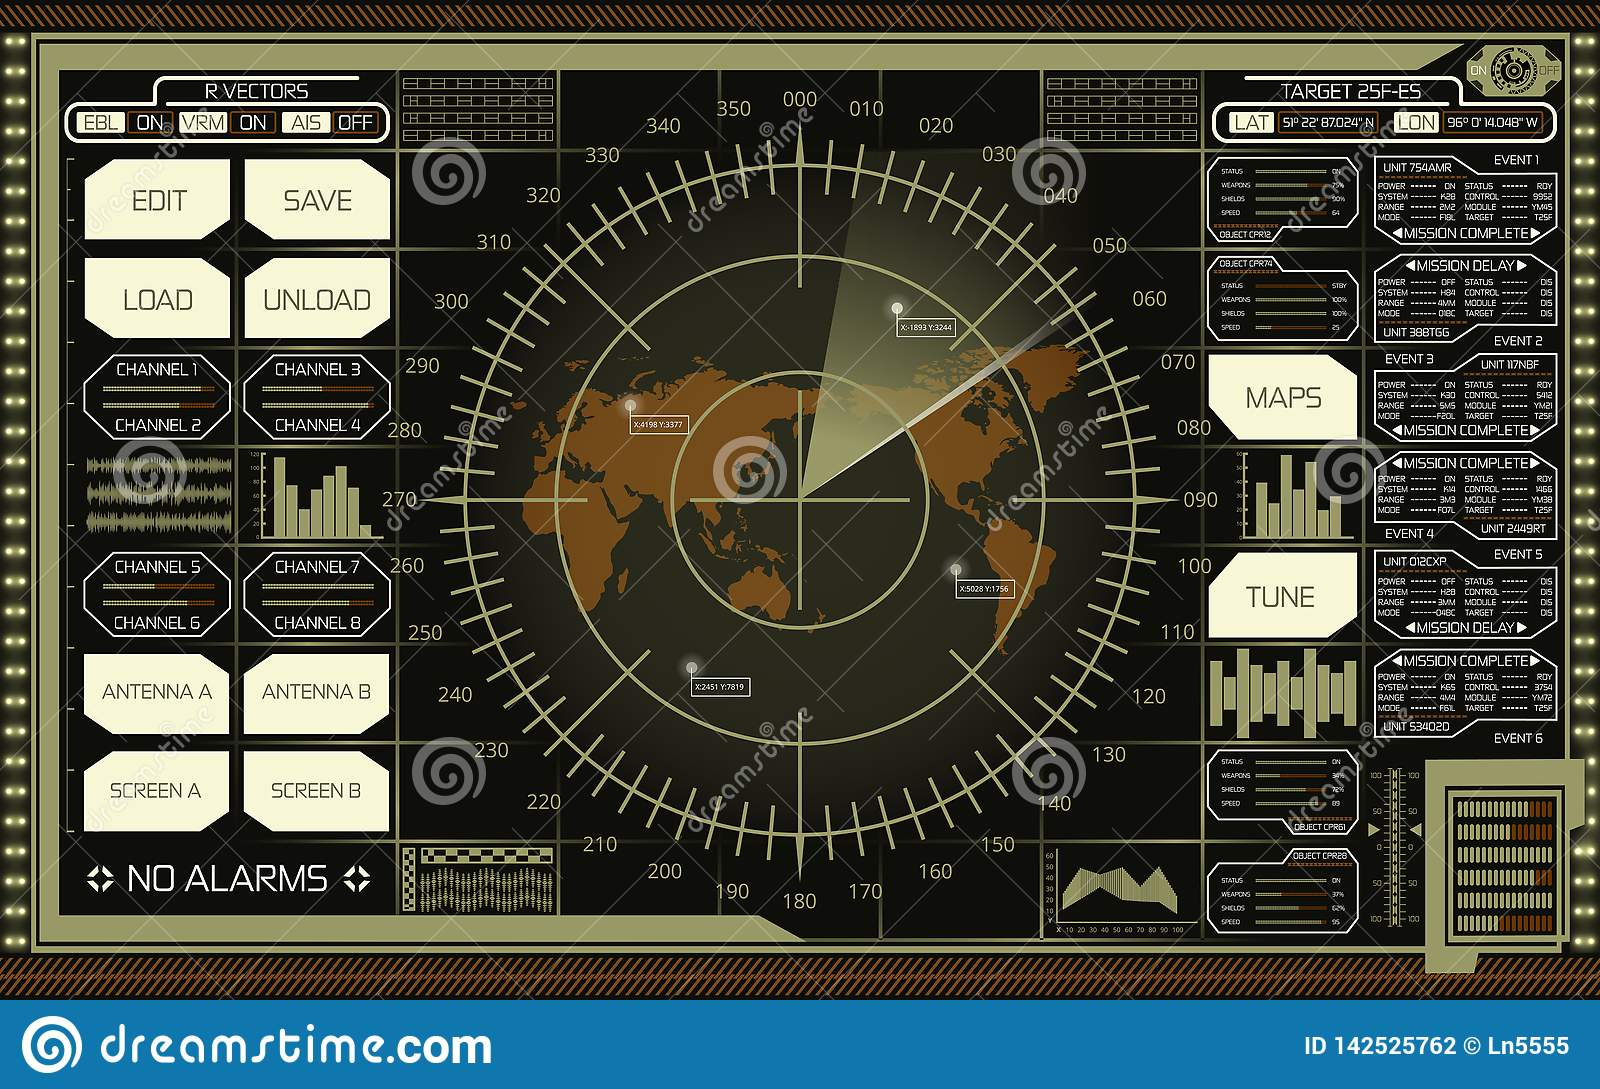 Digital radar screen with world map, targets and futuristic user interface of green, white and brown shades on dark background